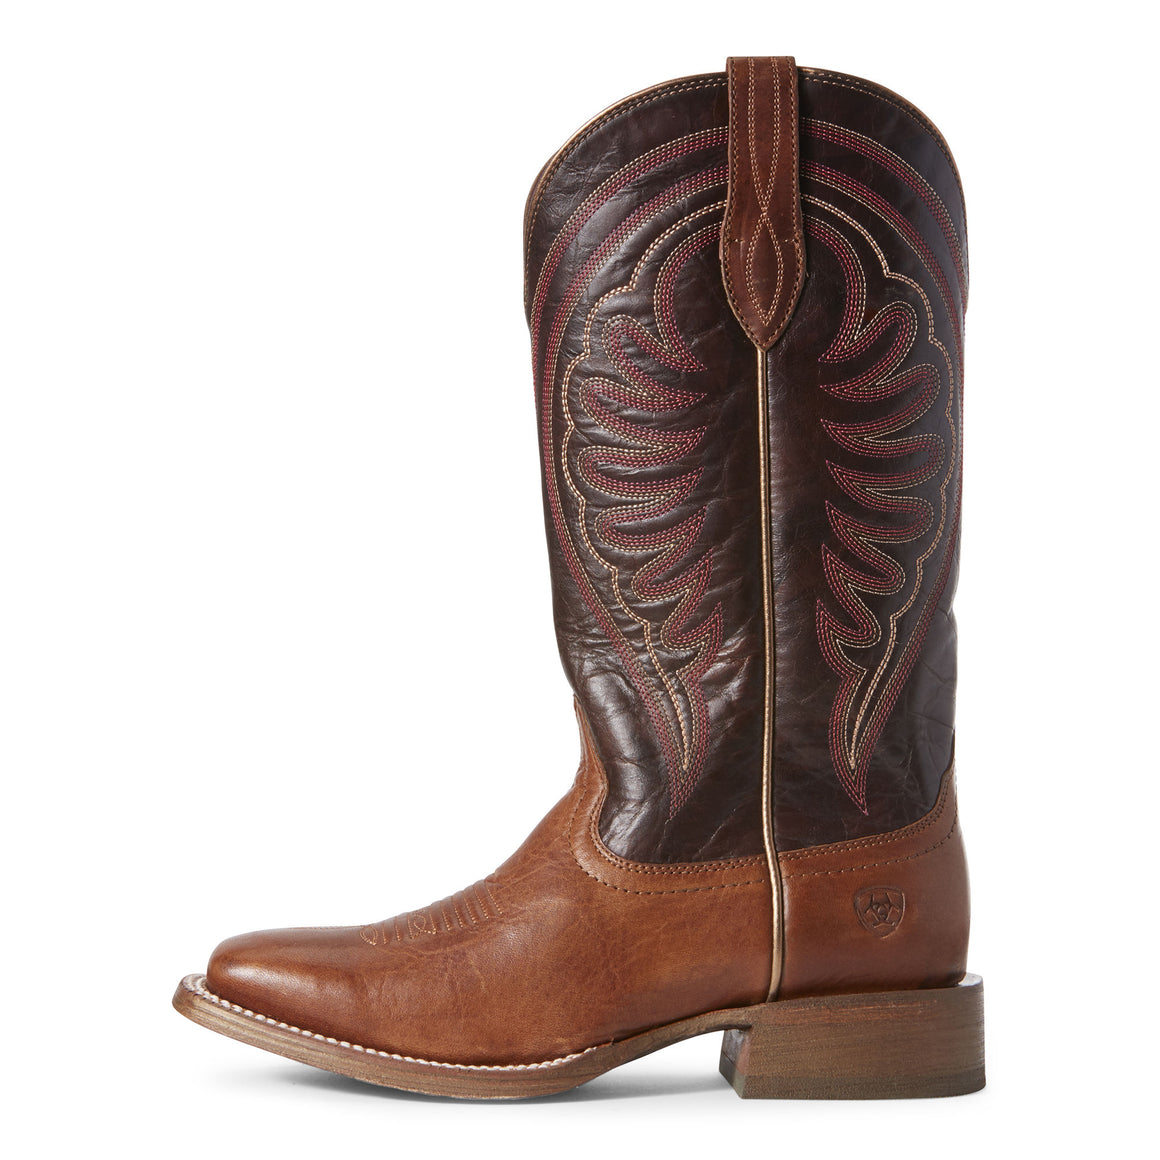 Ariat Womens Circuit Shiloh Nomad Brown/Madder Brown